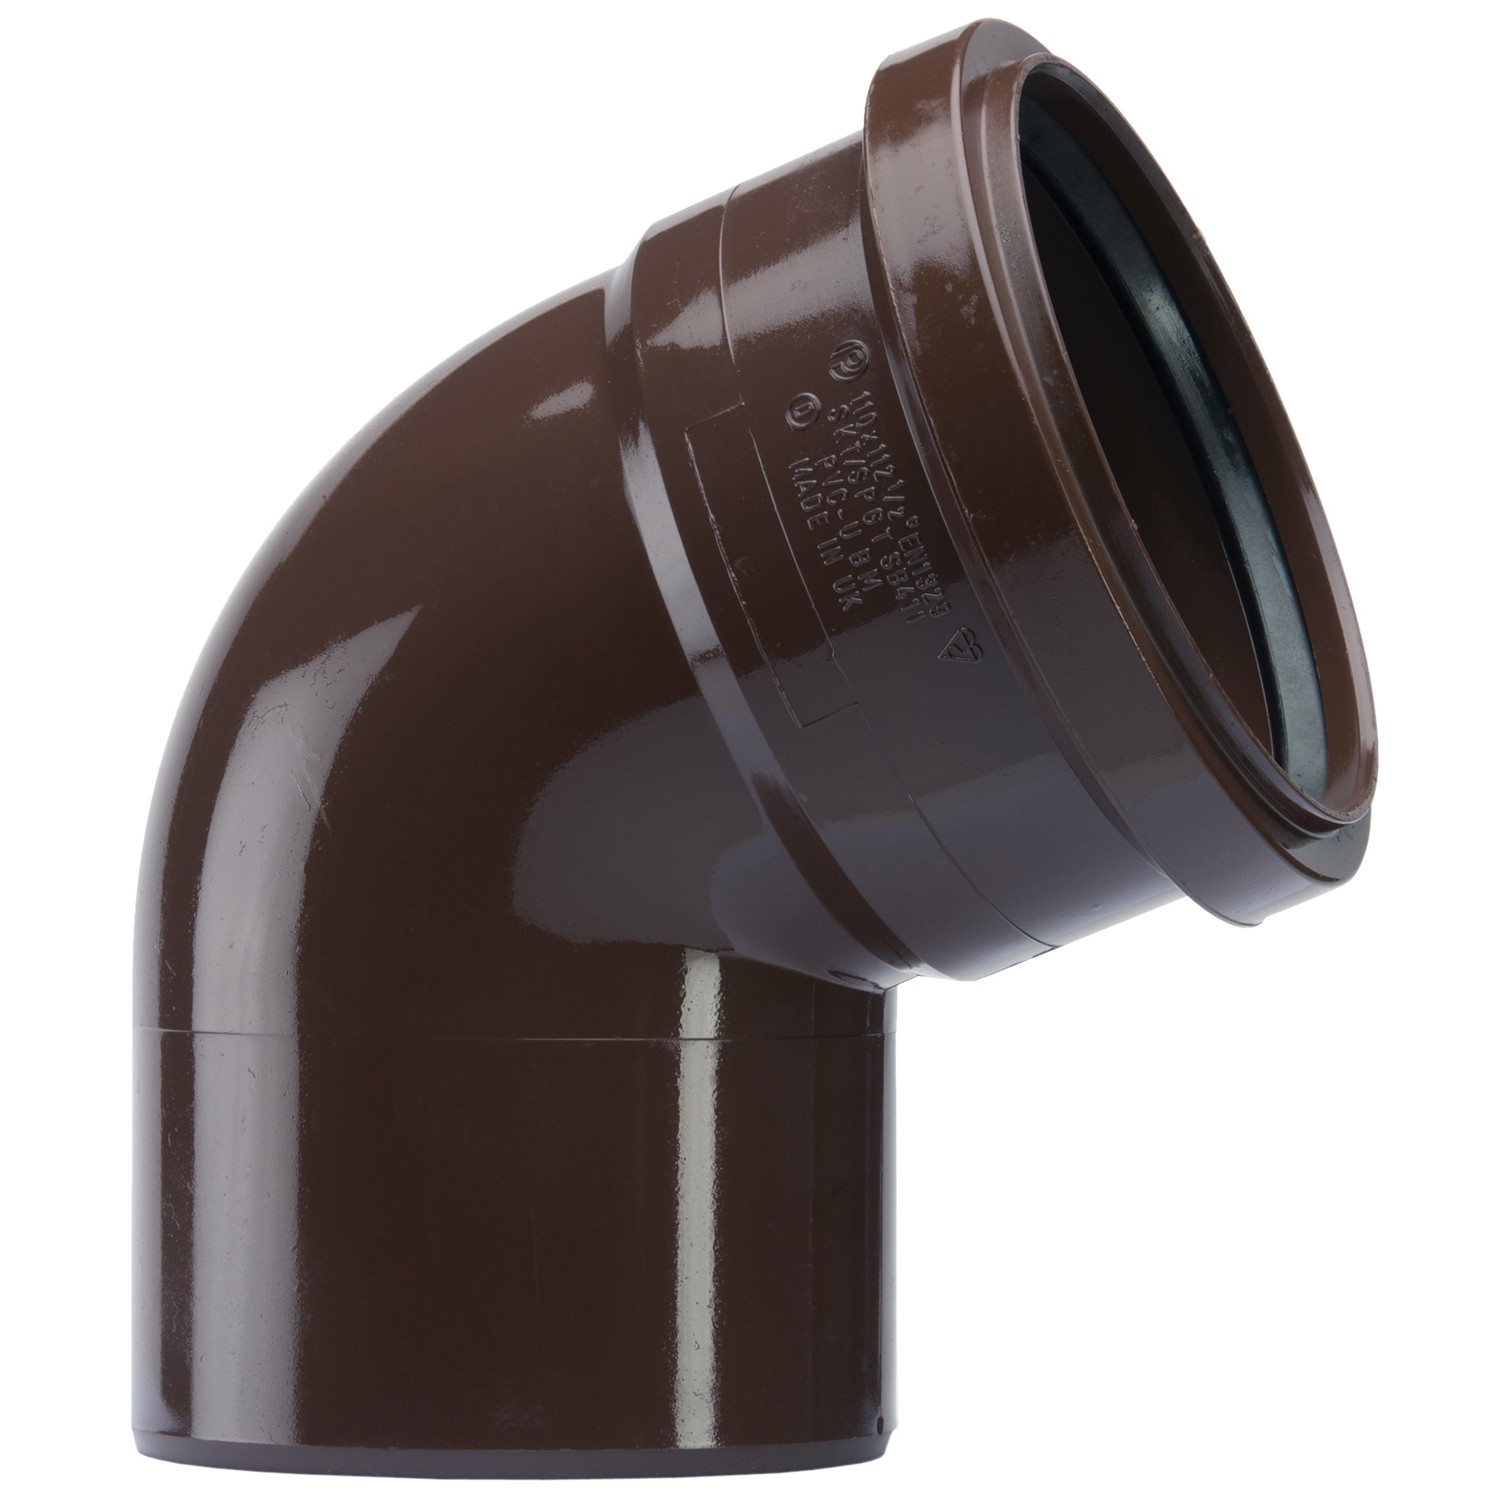 Polypipe 110mm Soil Single Socket 112.5 Degree Bend - Brown